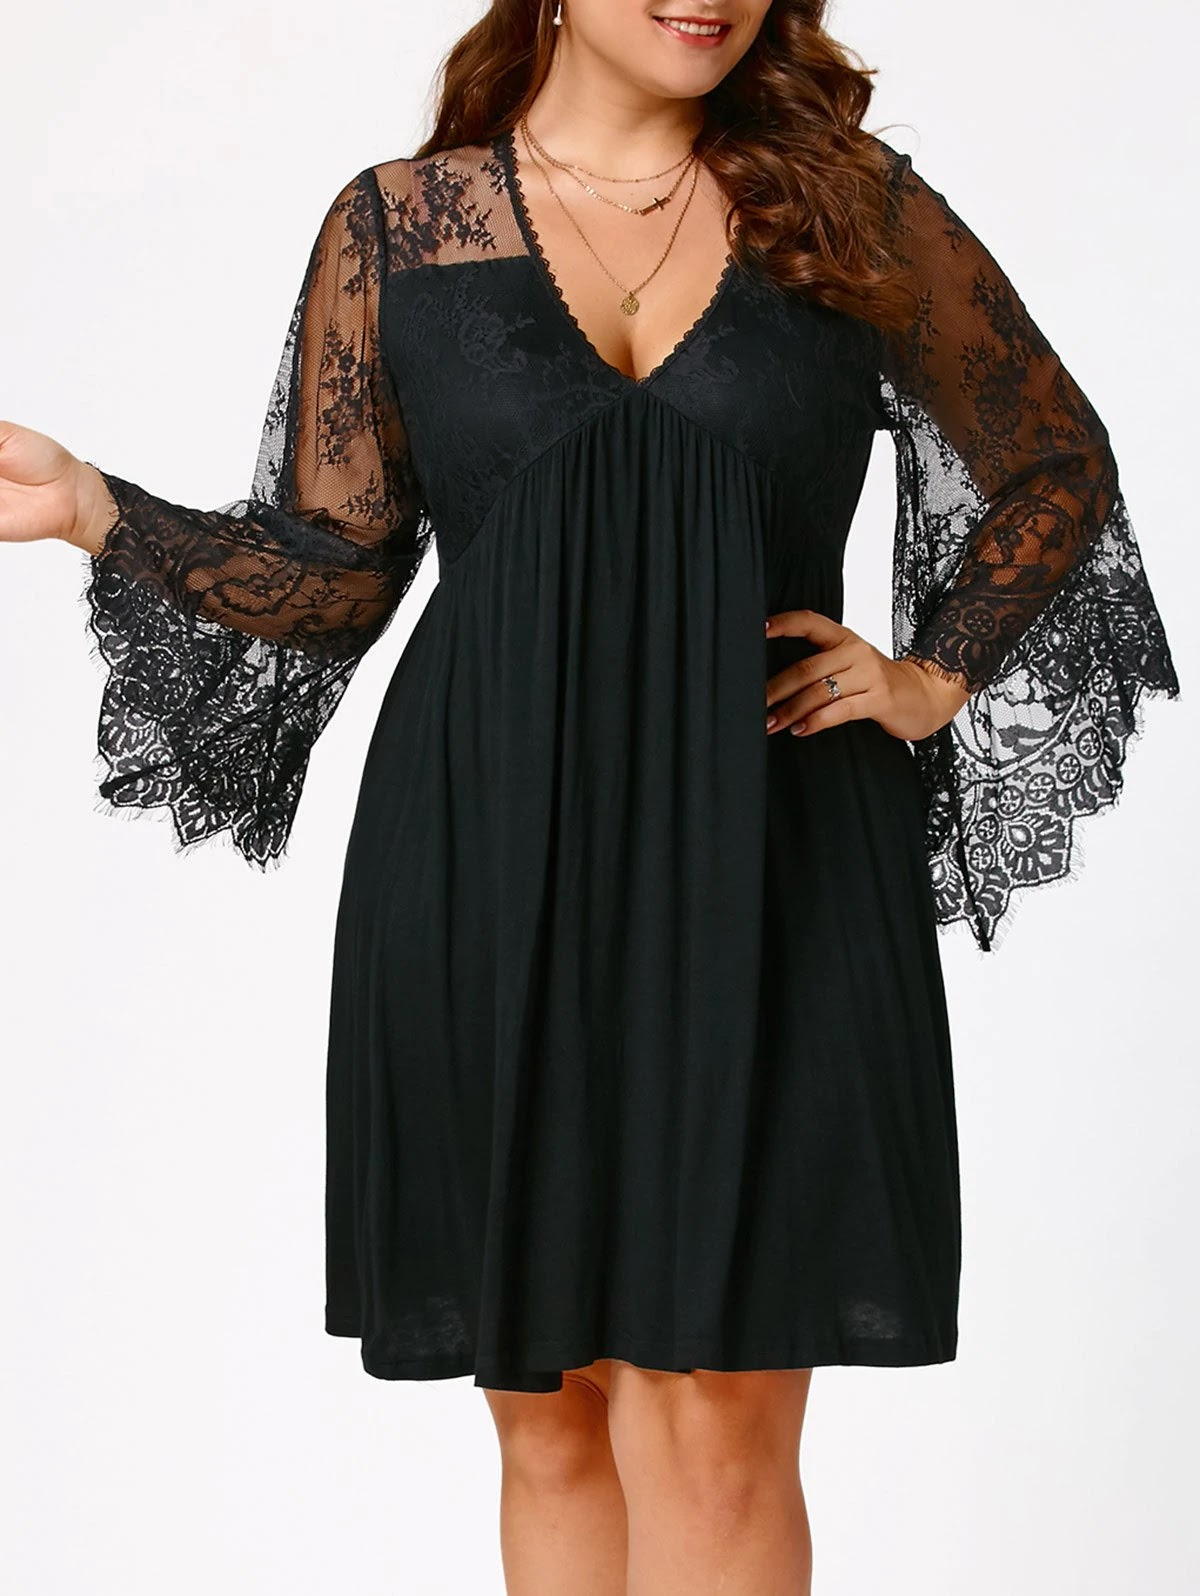 Empire Waist Plus Size Tunic Dress